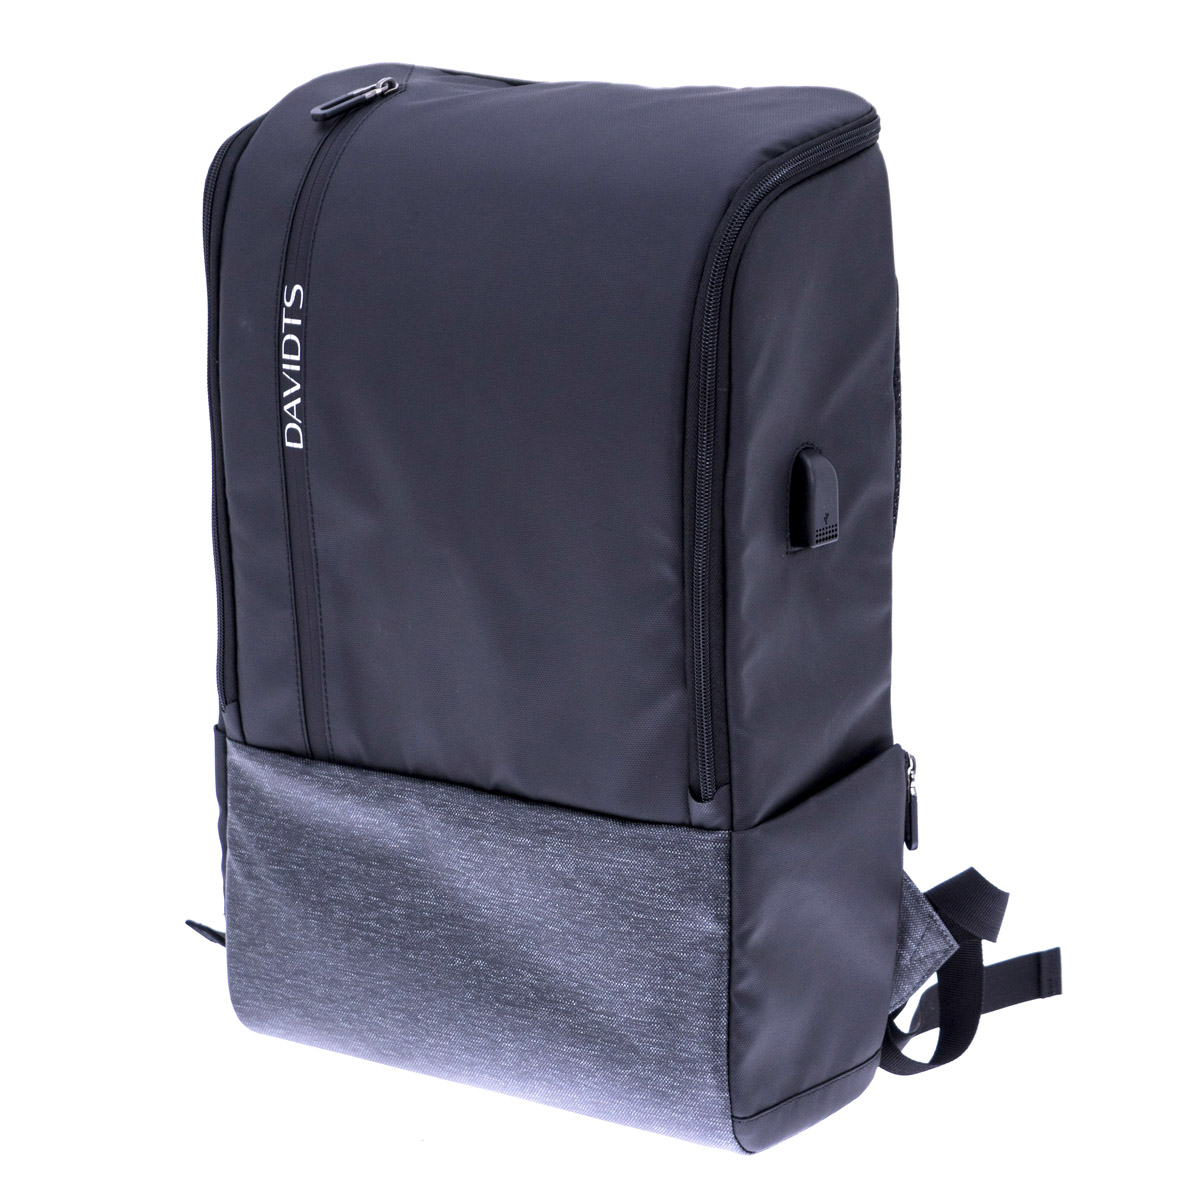 Sac à dos anti-vol, port usb \'Urban Traveler\' noir gris (ordinateur 17\' et tablette) - 47x305x15 cm - [Q9944]